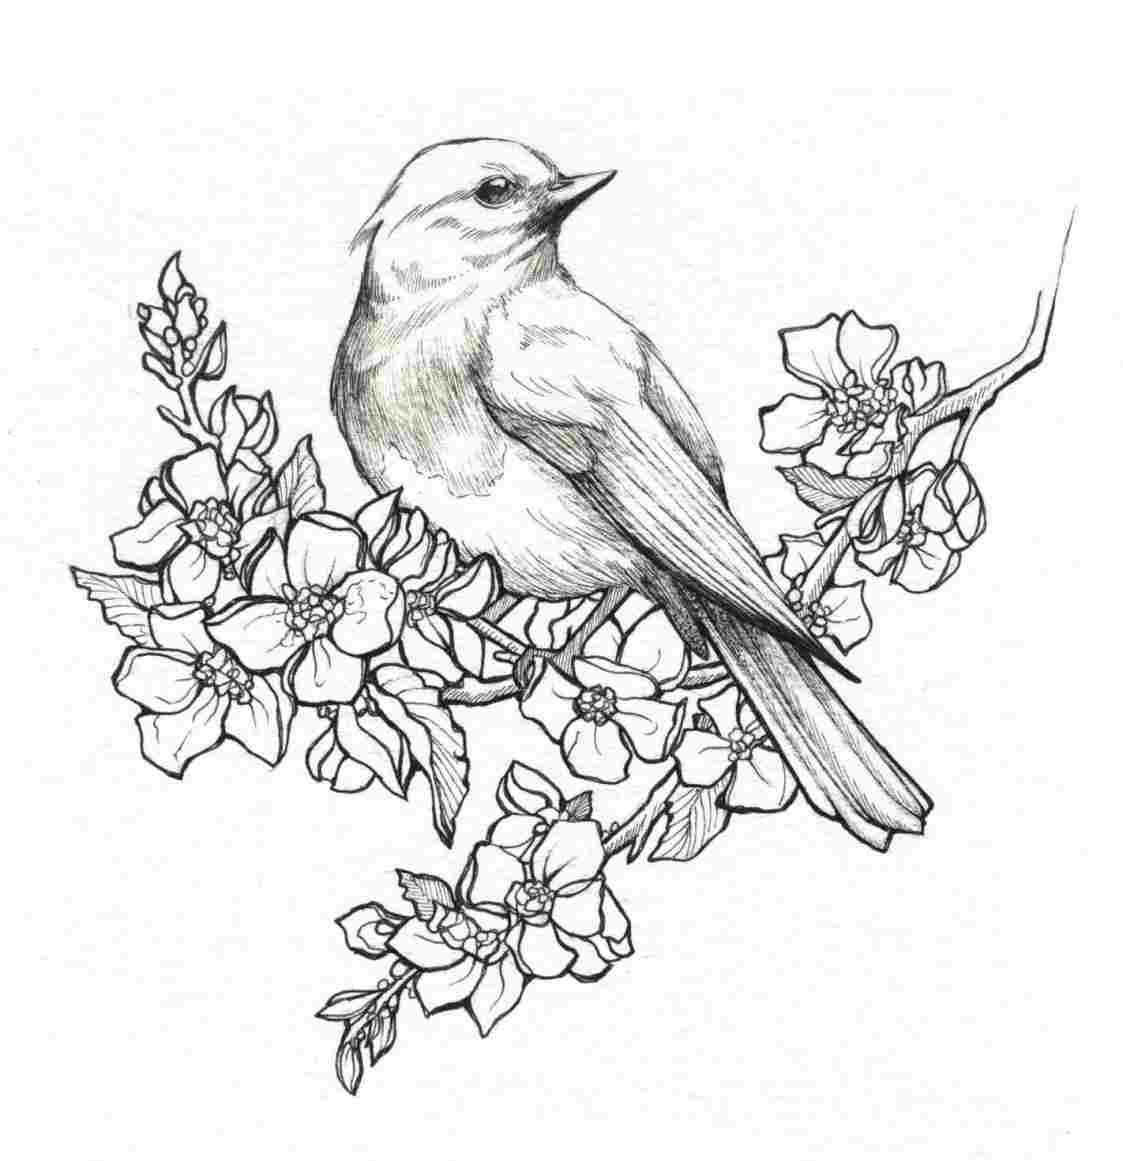 Pencil Drawings Of Flowers And Birds Pencil Drawings Of Flowers Bird Drawings Bird Sketch